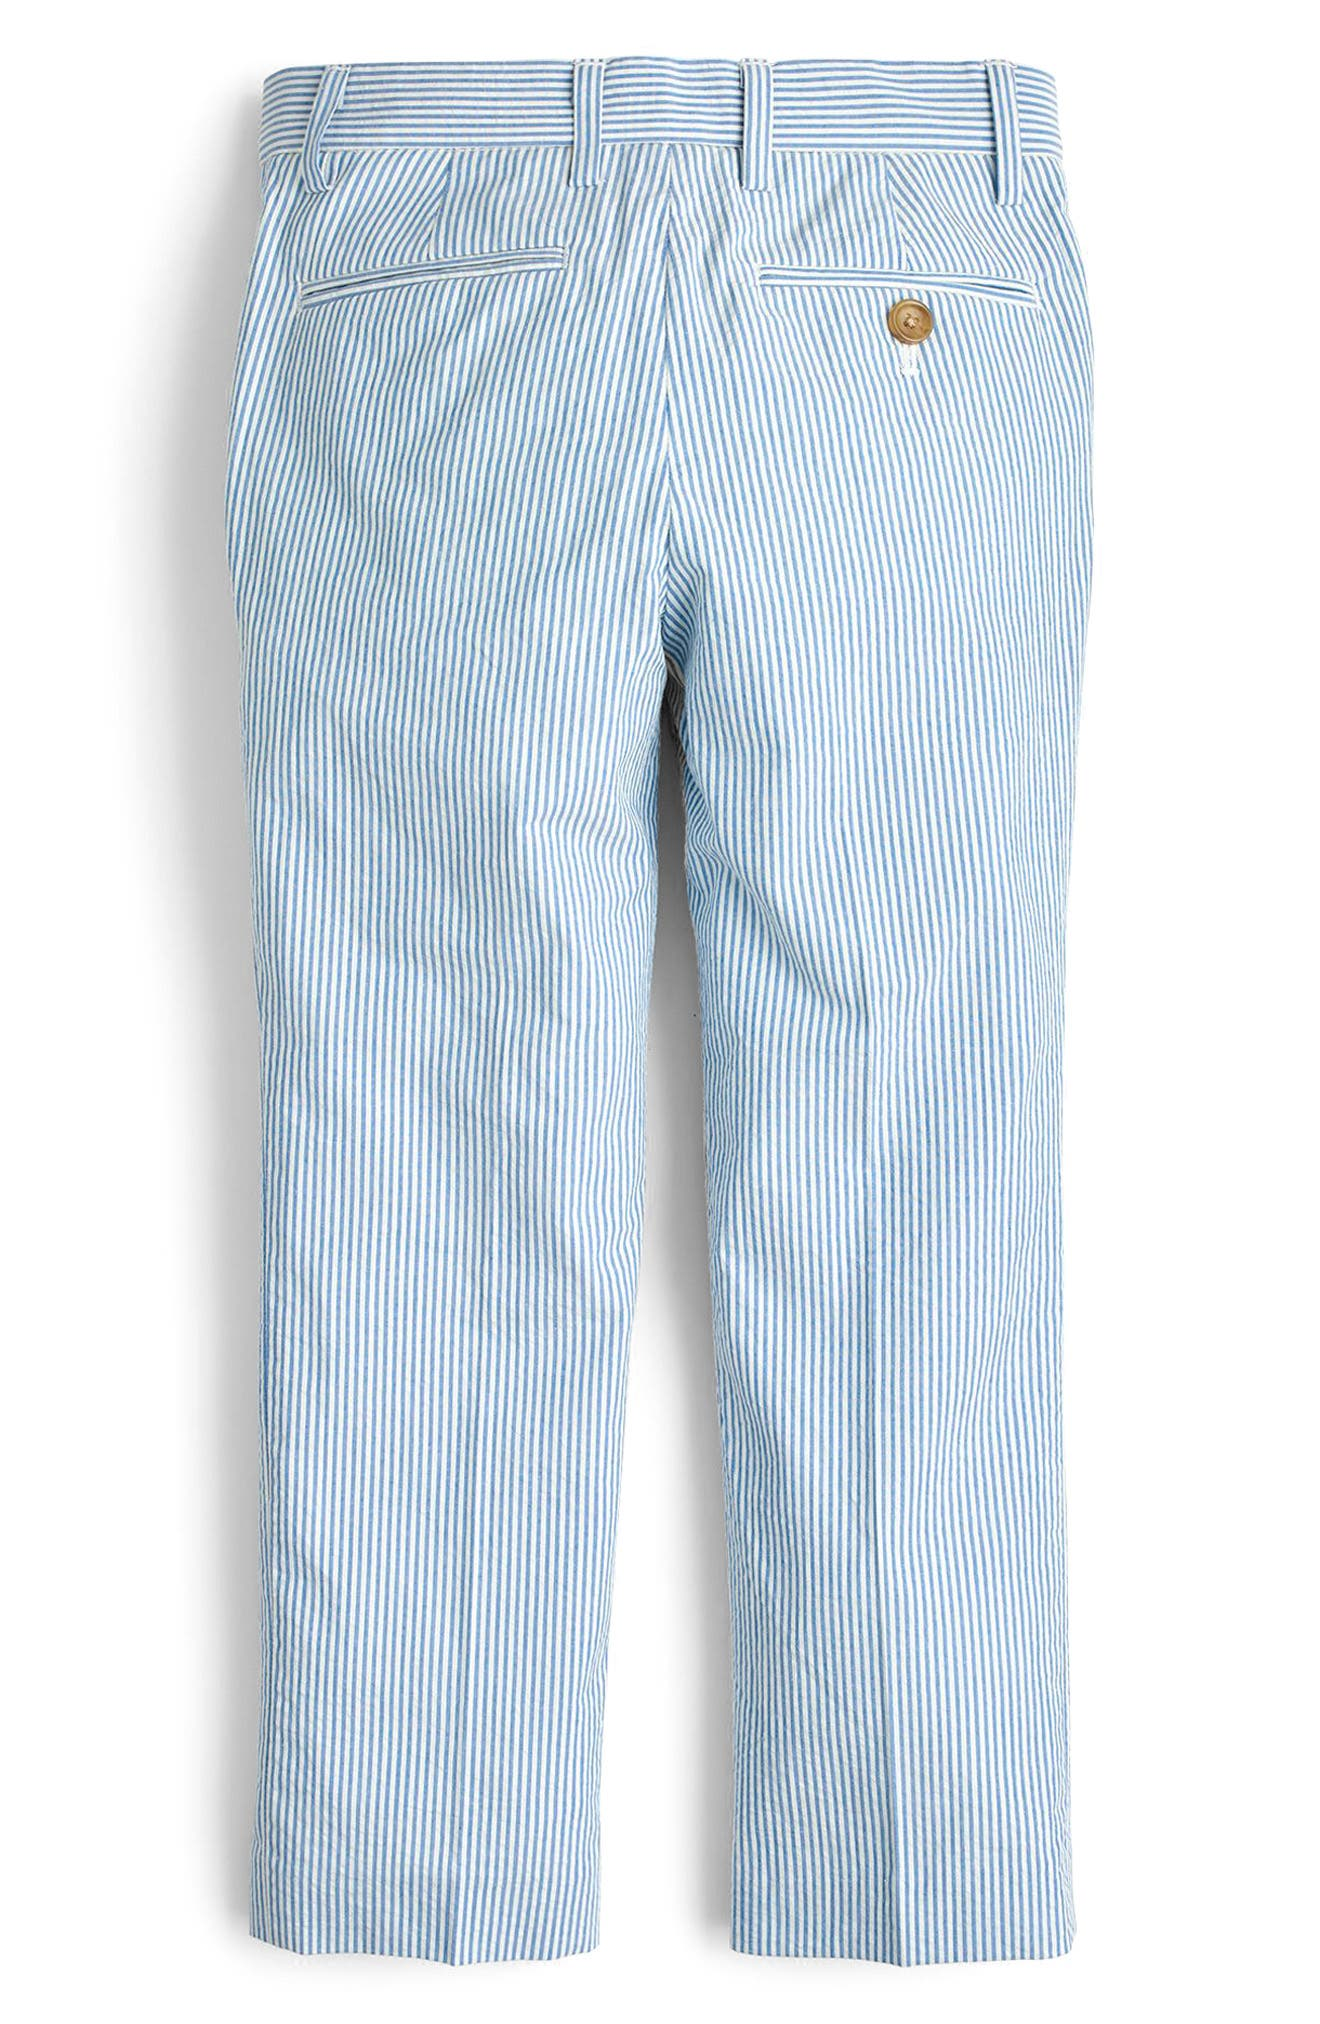 Ludlow Seersucker Pants,                             Alternate thumbnail 2, color,                             Crisp Azure White